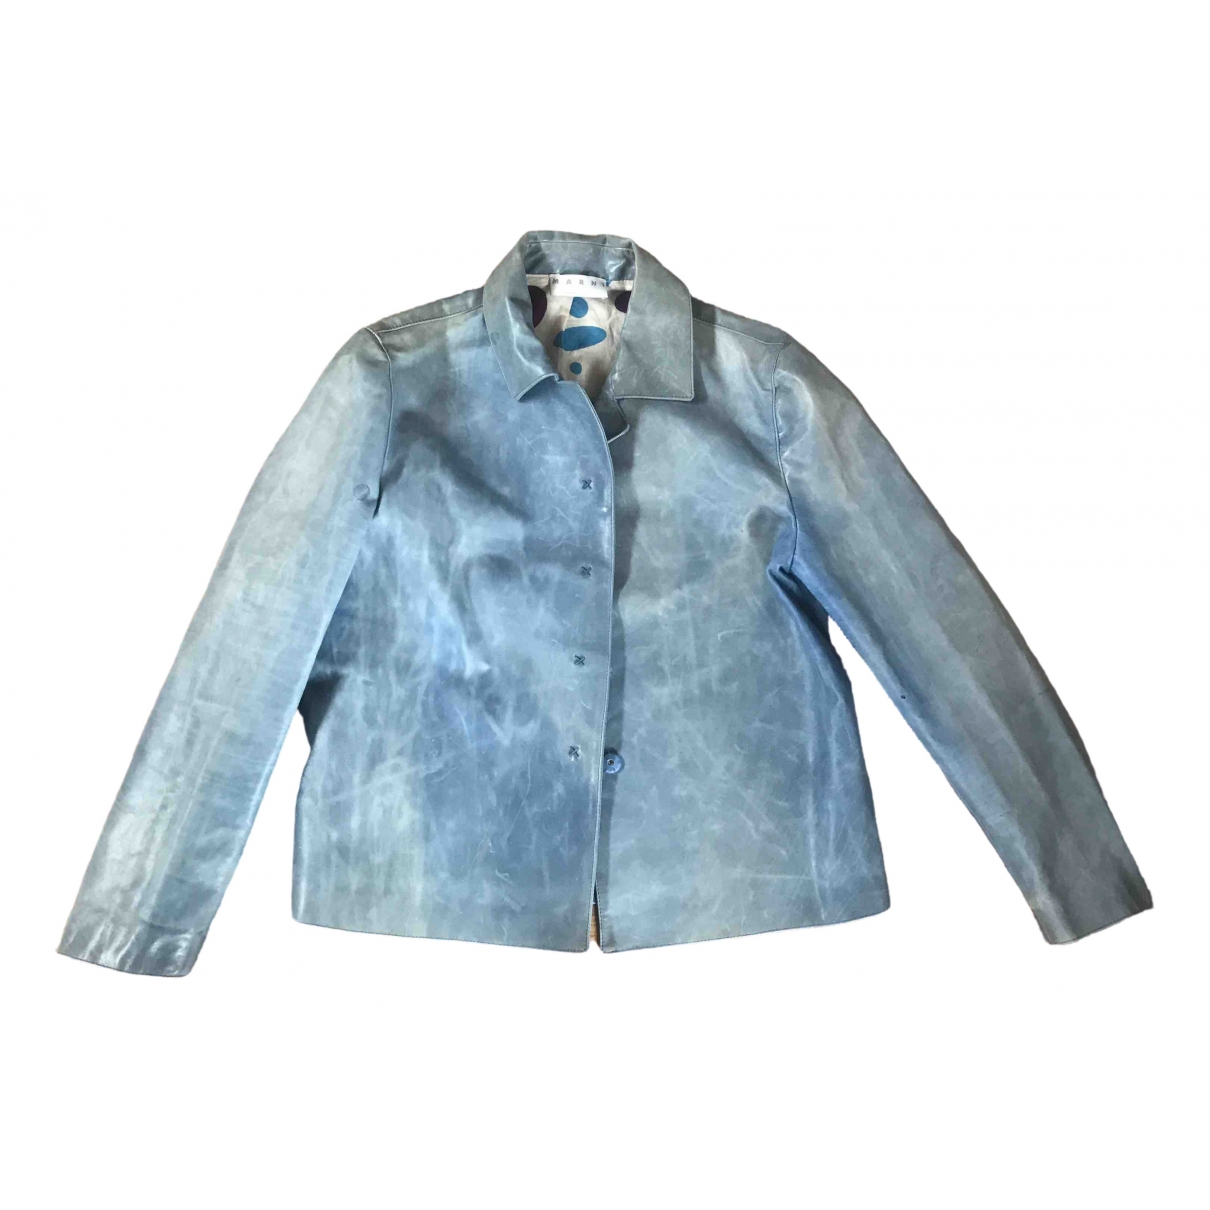 Marni \N Blue Leather jacket for Women 44 IT